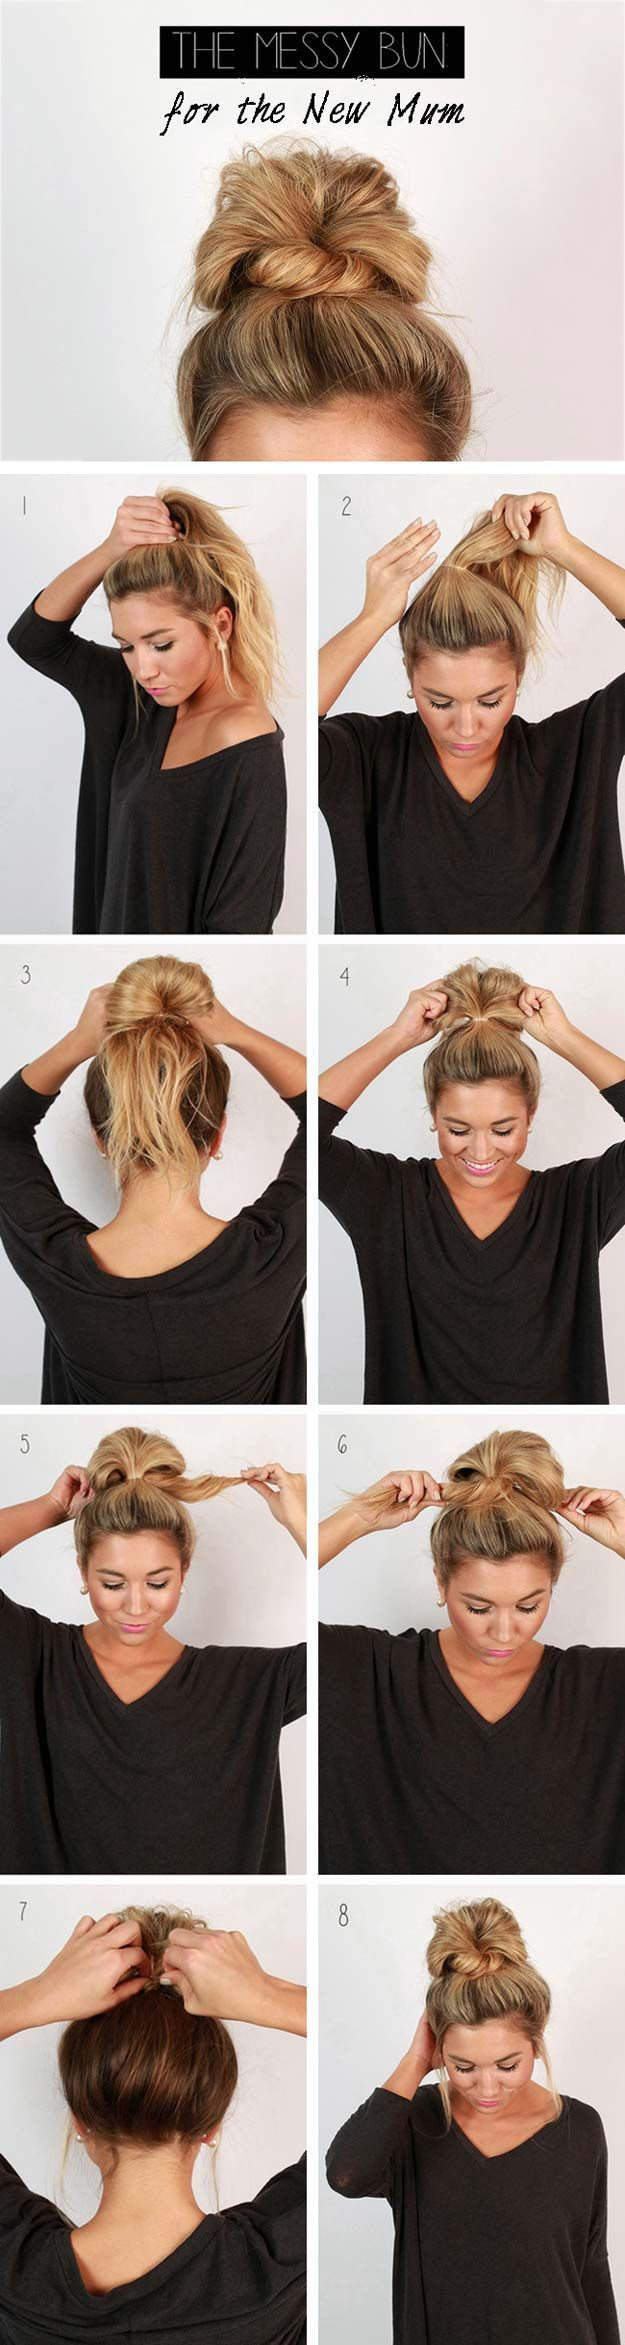 DIY Cool Easy Hairstyles That Real People Can Actually Do at Home! Cool and Easy DIY Hairstyles - Messy Bun - Quick and Easy Ideas for Back to School Styles for Medium, Short and Long Hair - Fun Tips and Best Step by Step Tutorials for Teens, Prom, Weddings, Special Occasions and Work. Up dos, Braids, Top Knots and Buns,Cool and Easy DIY Hairstyles - Messy B...